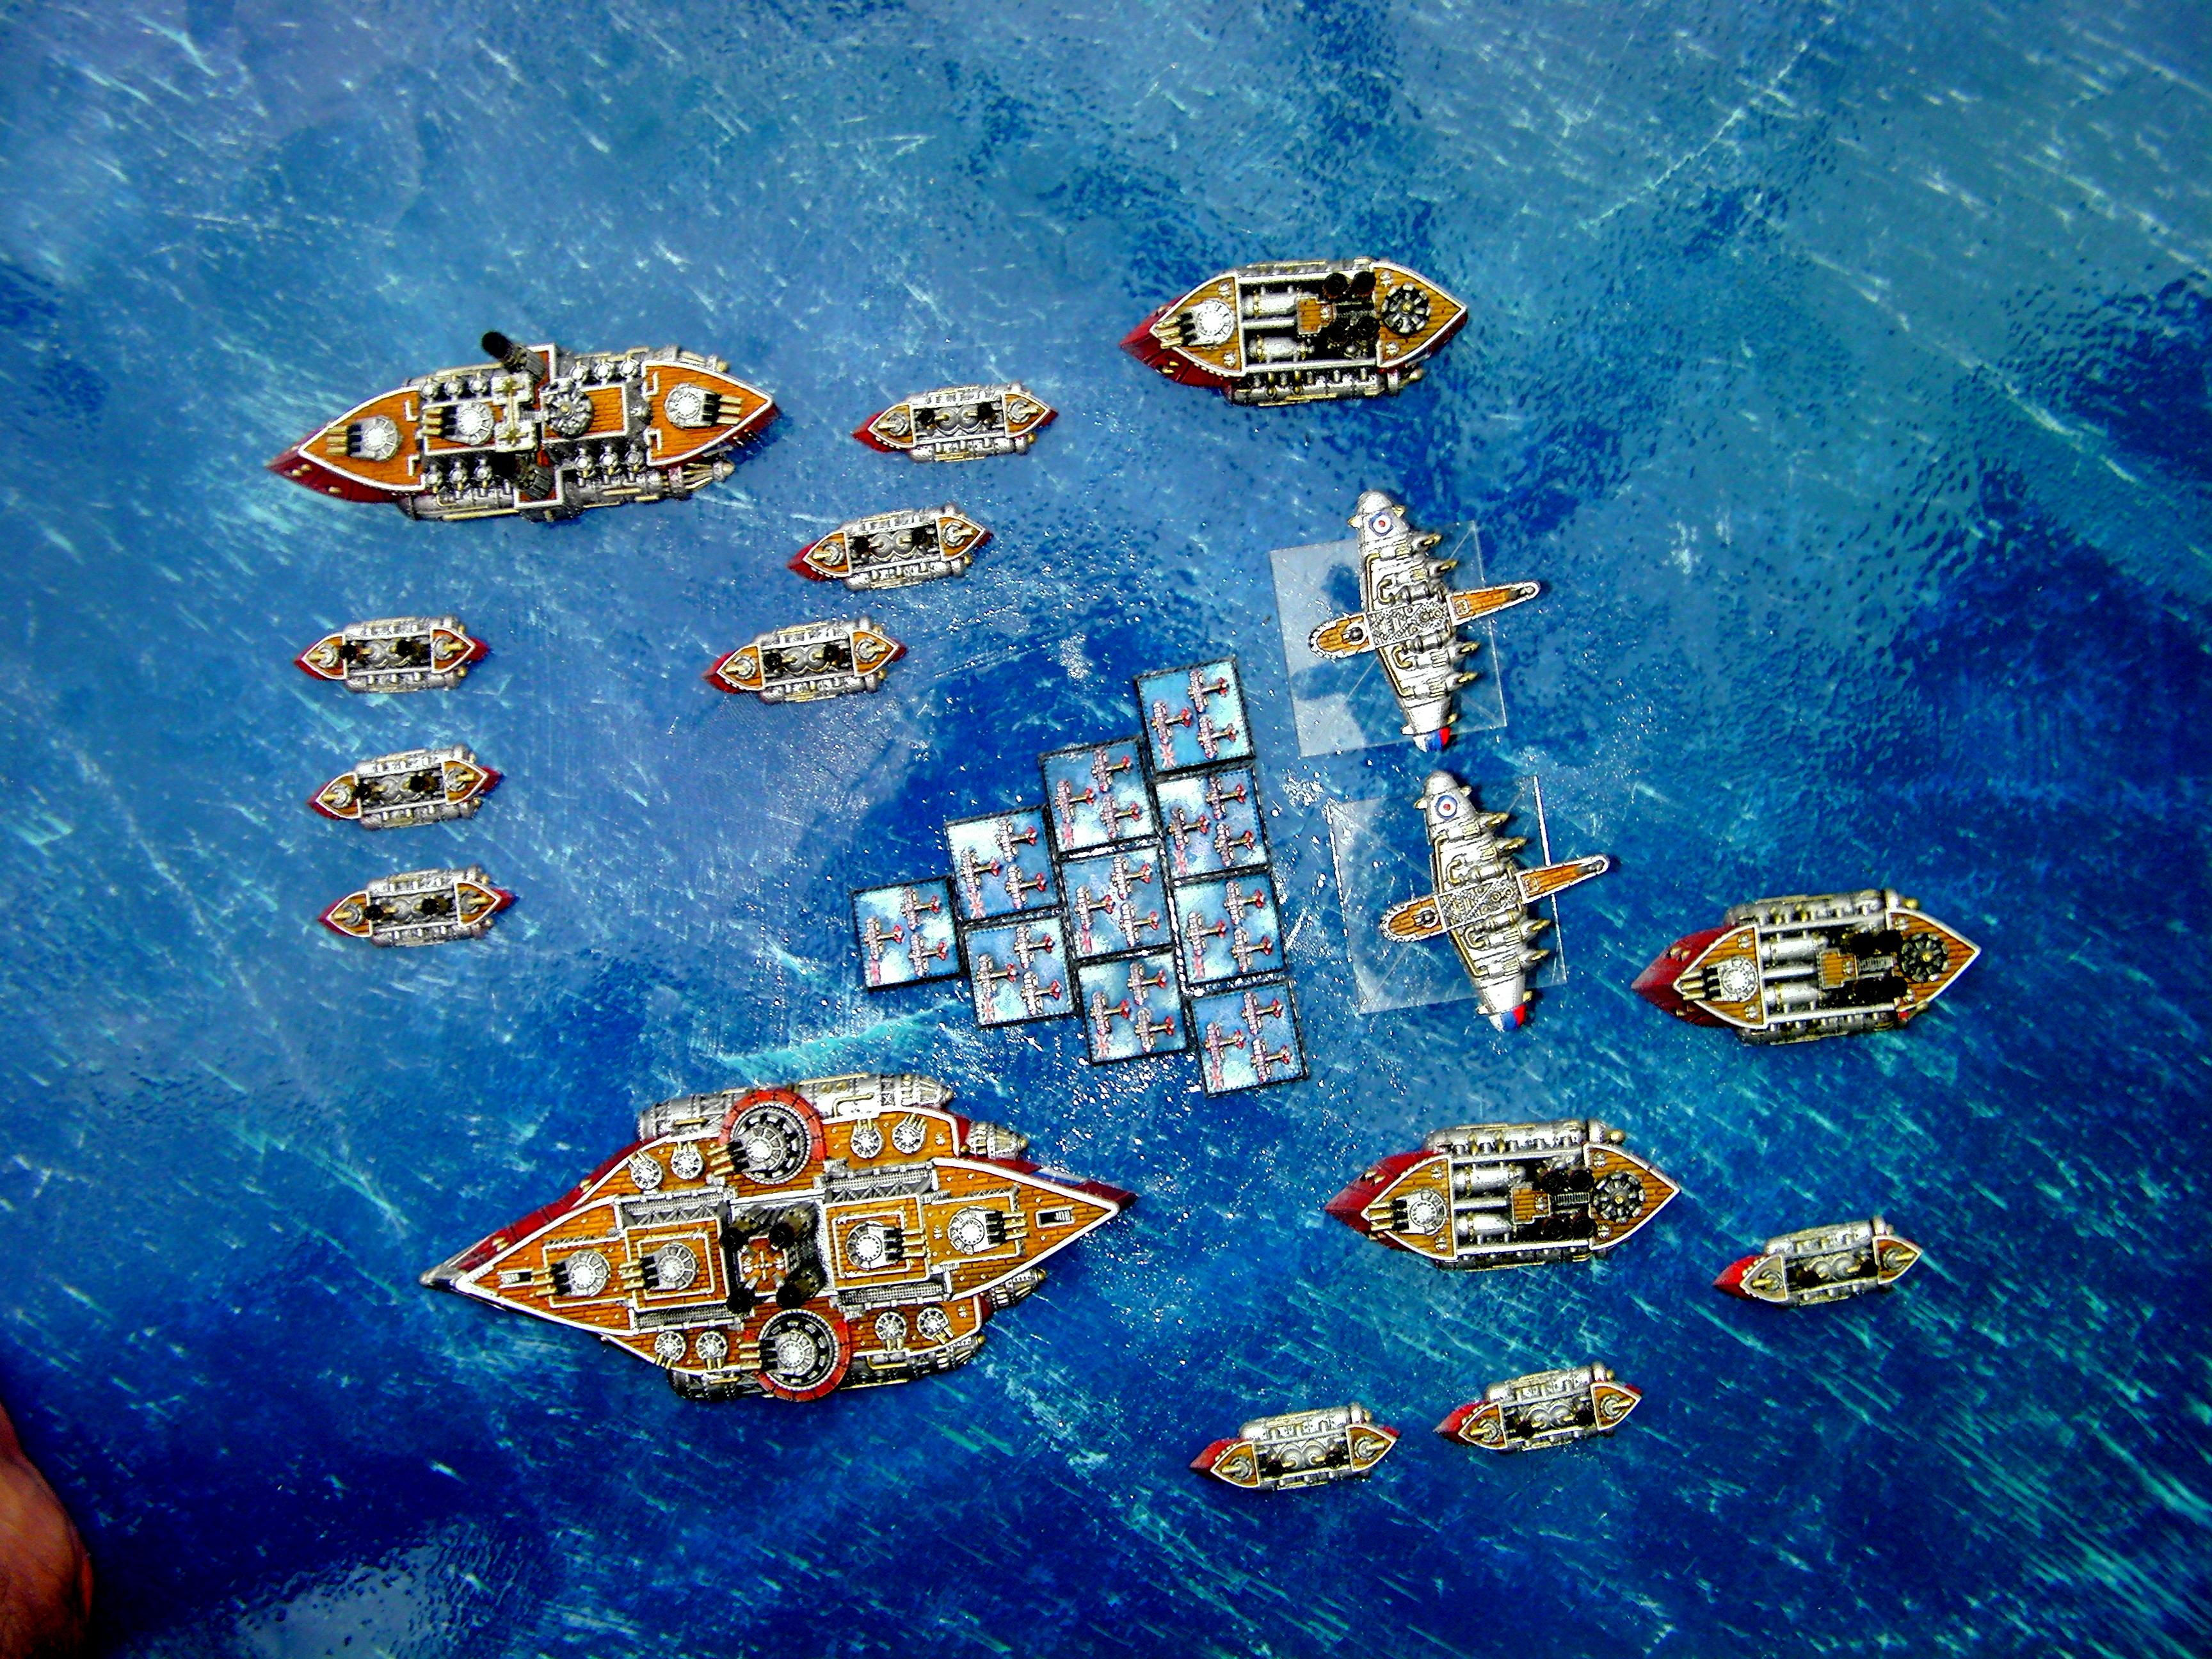 British Fleet, English Fleet, Fleet, Kingdom Of Britannia Fleet, Kob